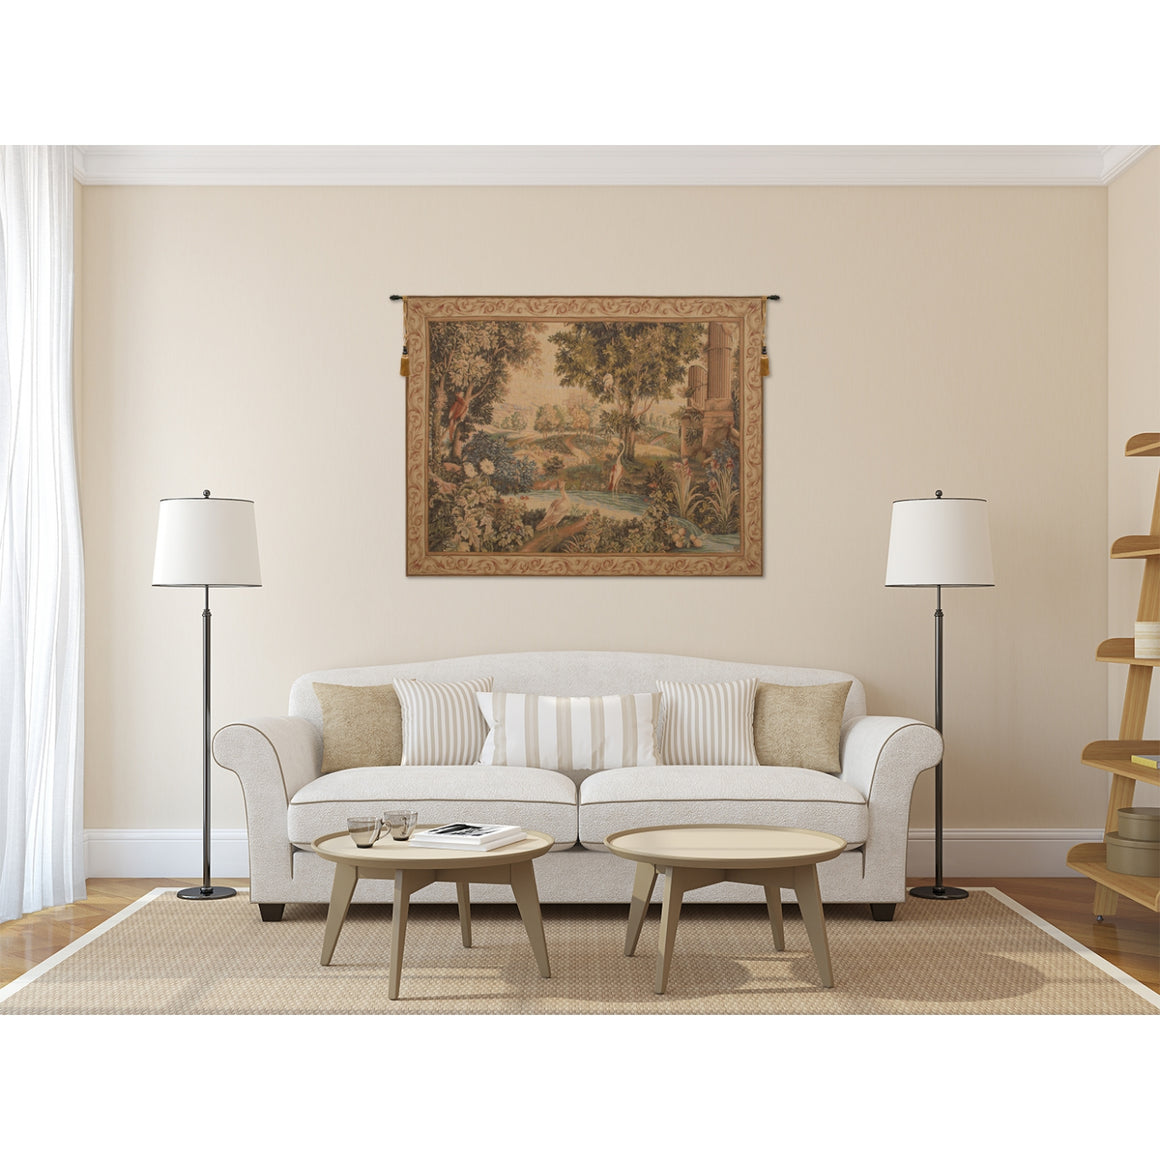 Verdure Aux Oiseaux II French Decor Wall Decor